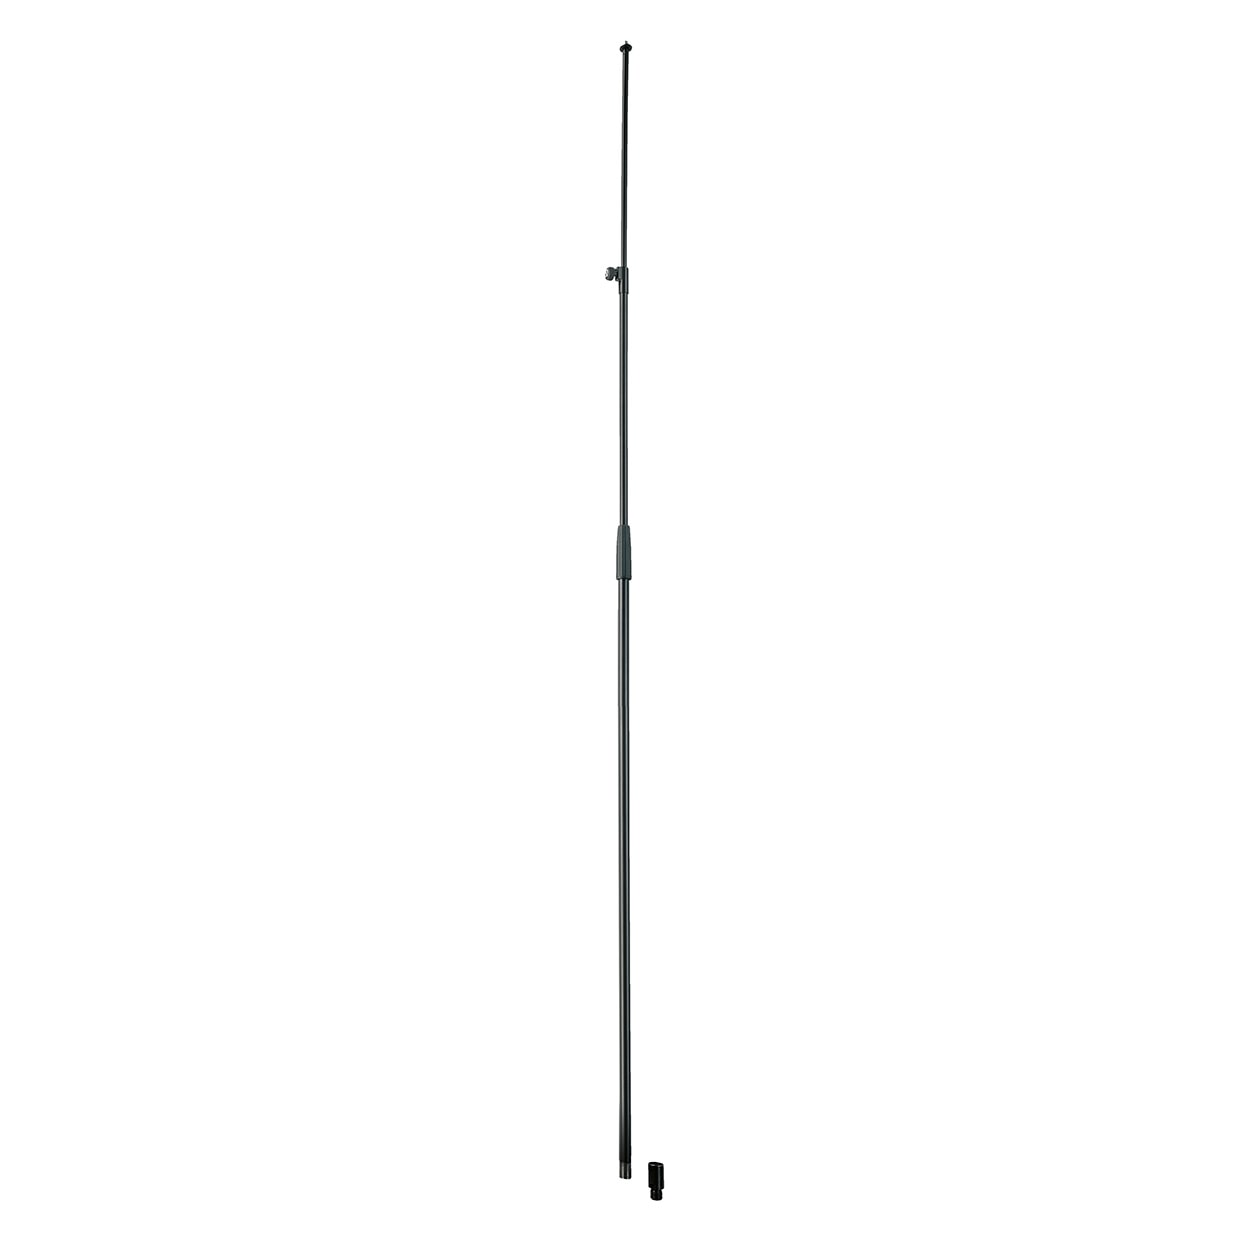 KM26007 - Microphone stand - Tube combination